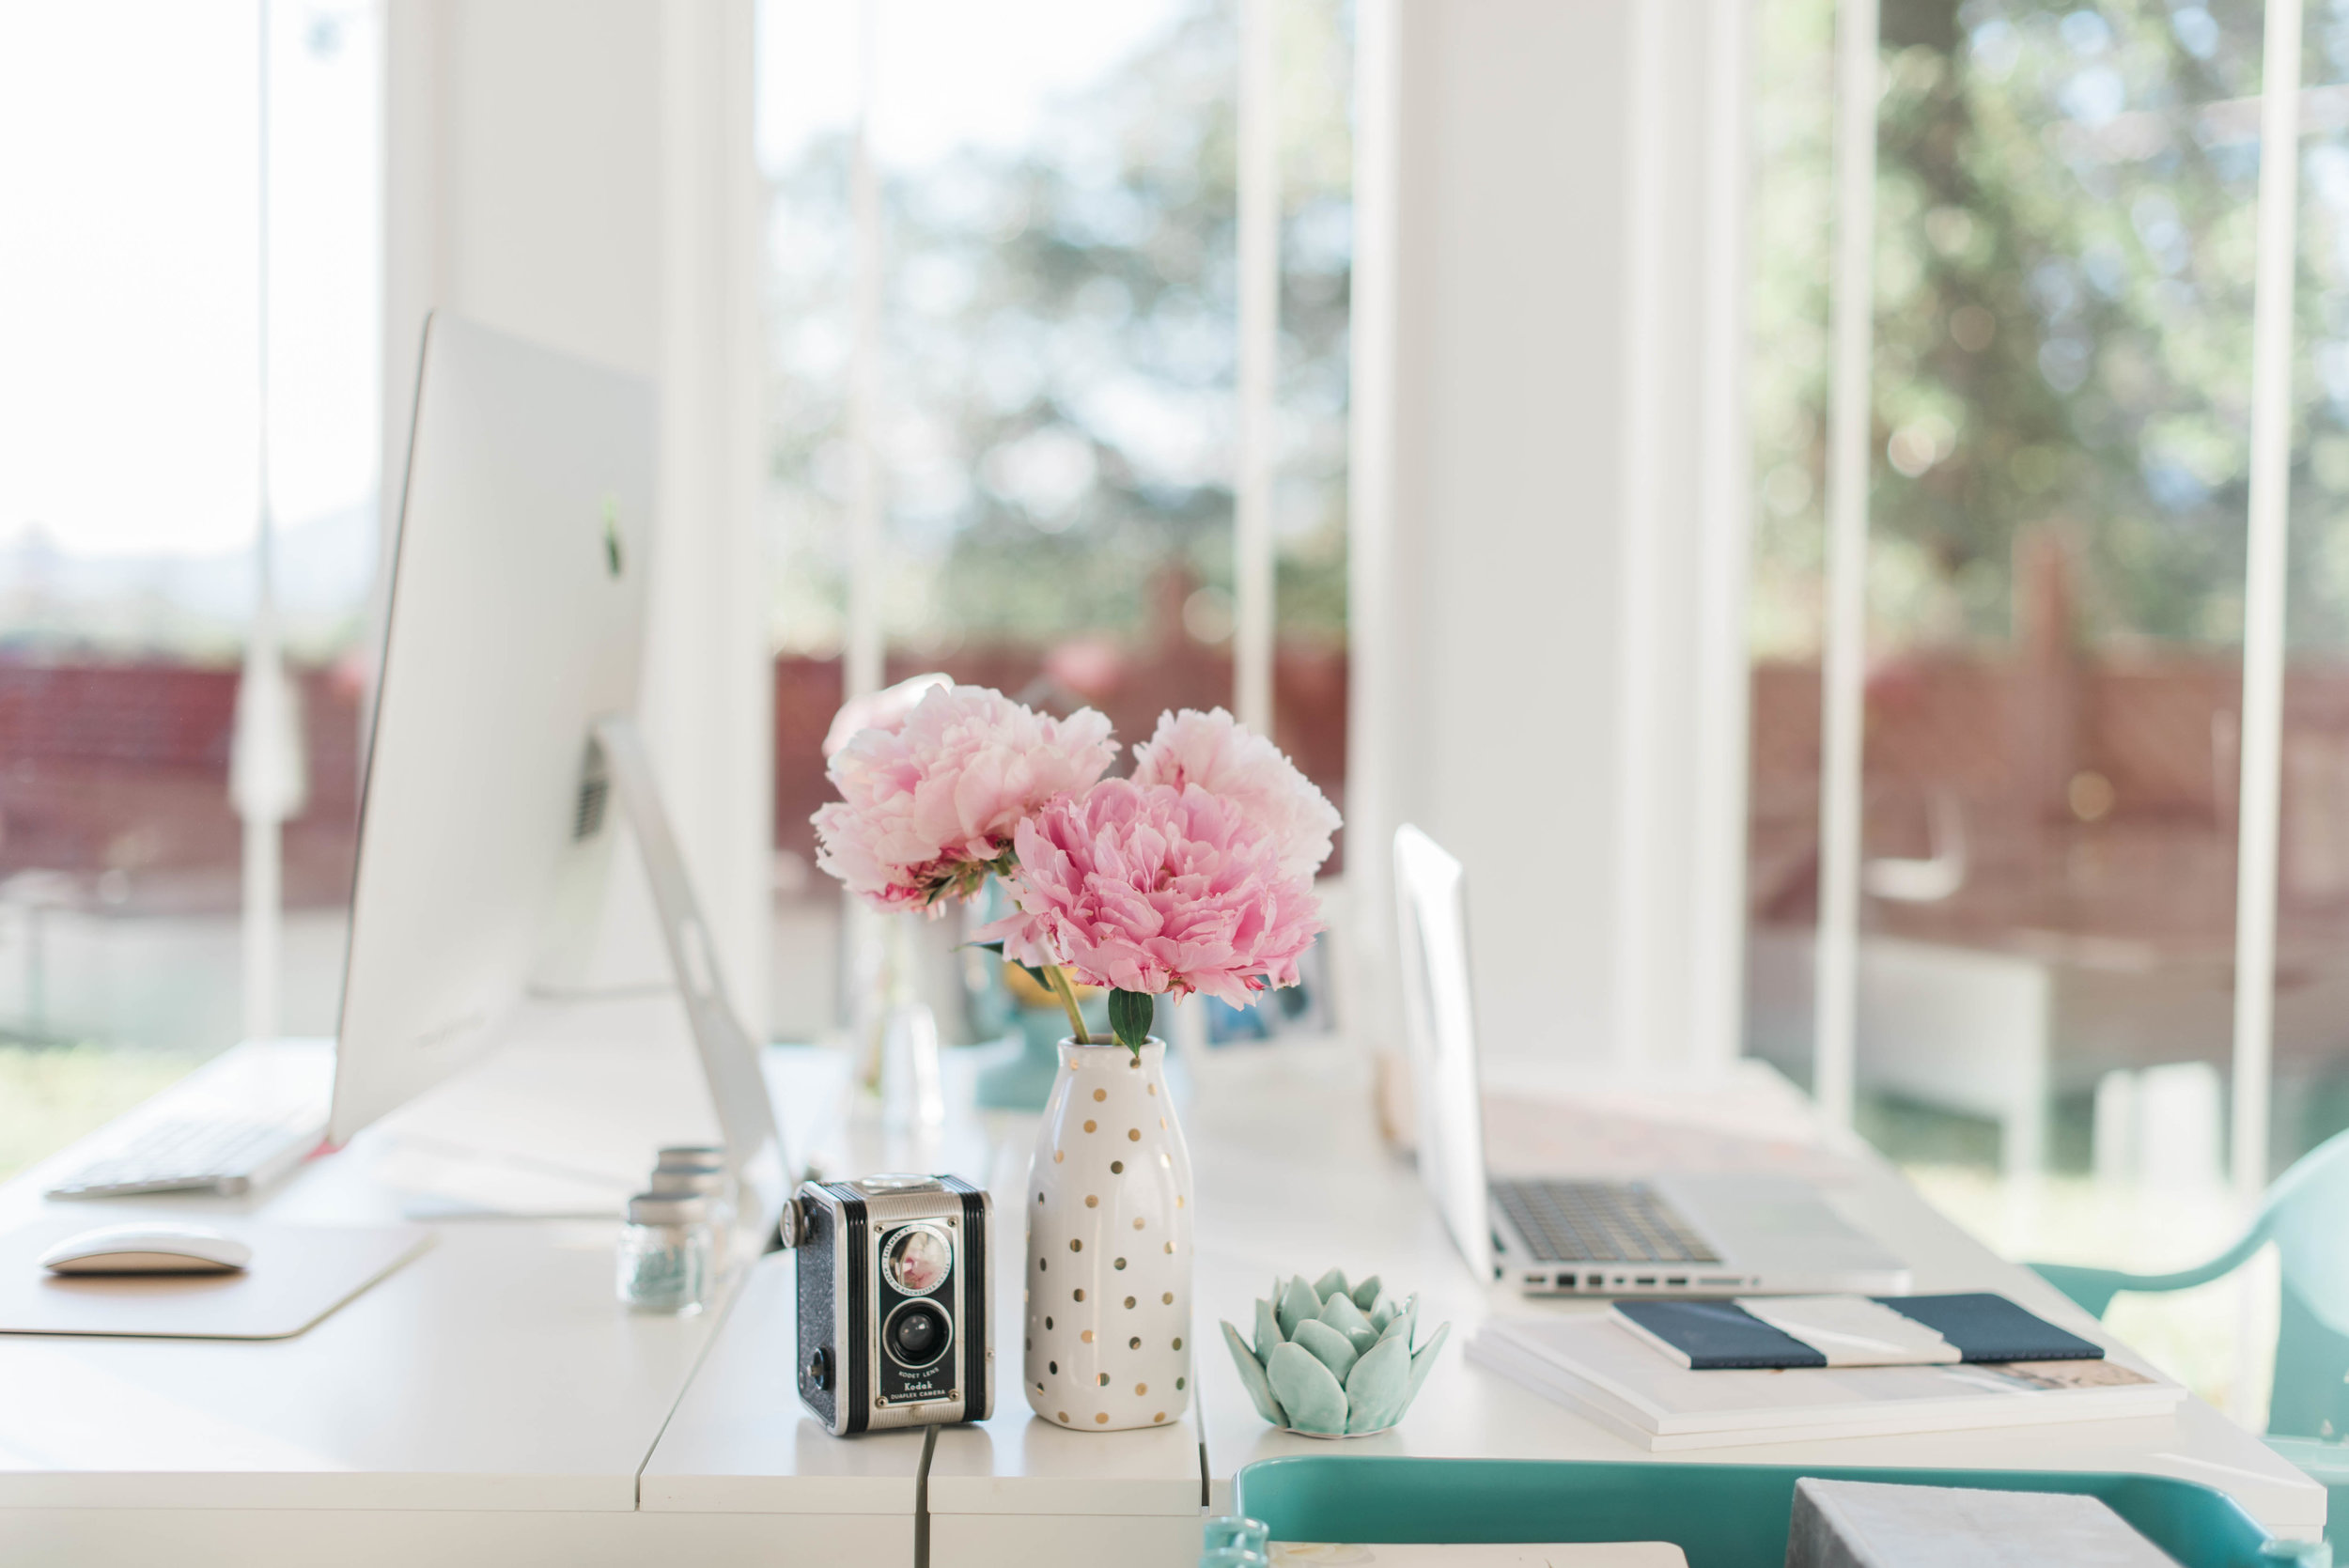 "This photographer's must have items...27"" iMac, vintage film camera, bouquet of peonies, Macbook Pro! Come back next month for a more detailed list of what key items I live for in my office and organizational tools that can help anyone design a beautiful and functional space!"